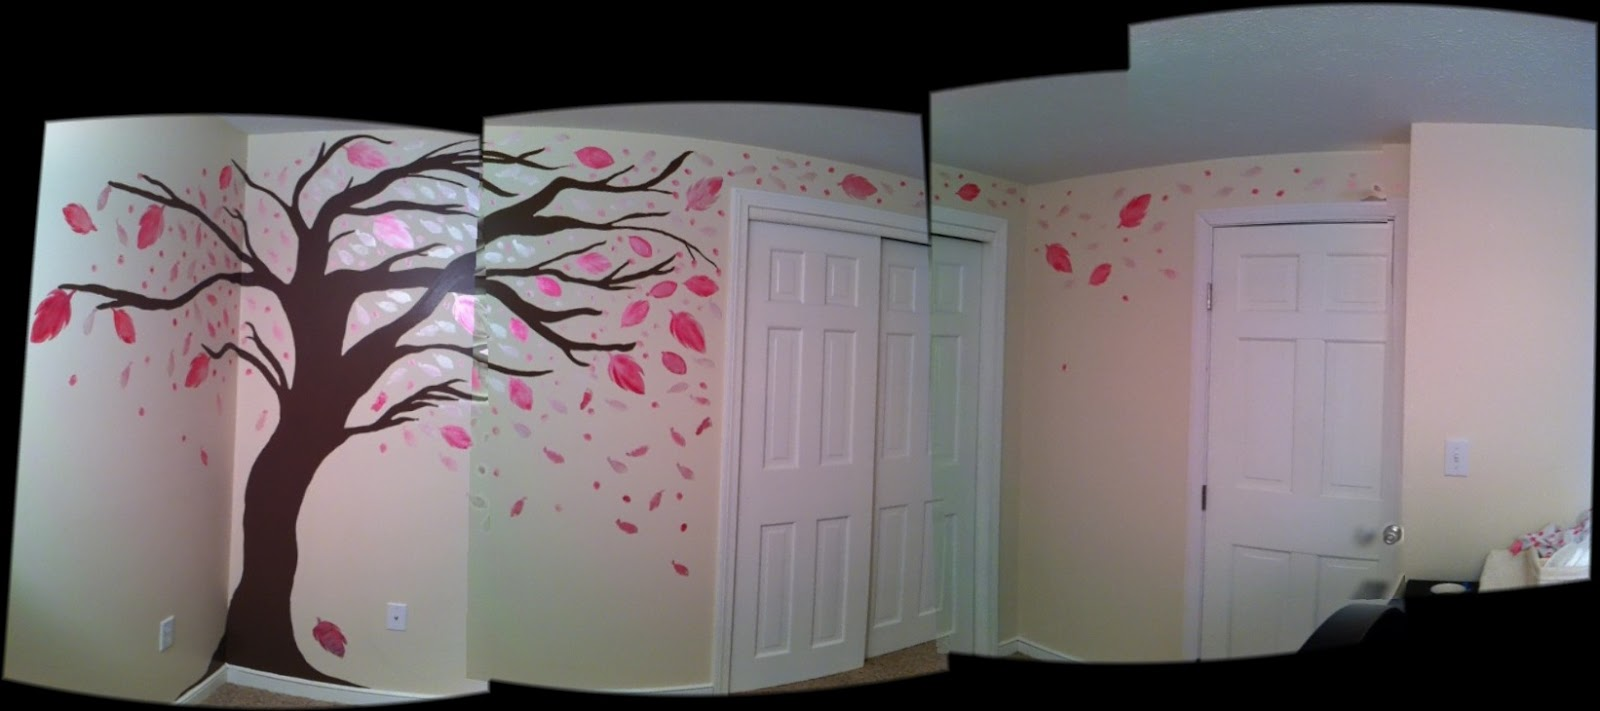 silver magpie studio whimsical tree mural this week the studio went mobile as i traveled to do a very special mural for a very special little girl working with her parents we developed a whimsical